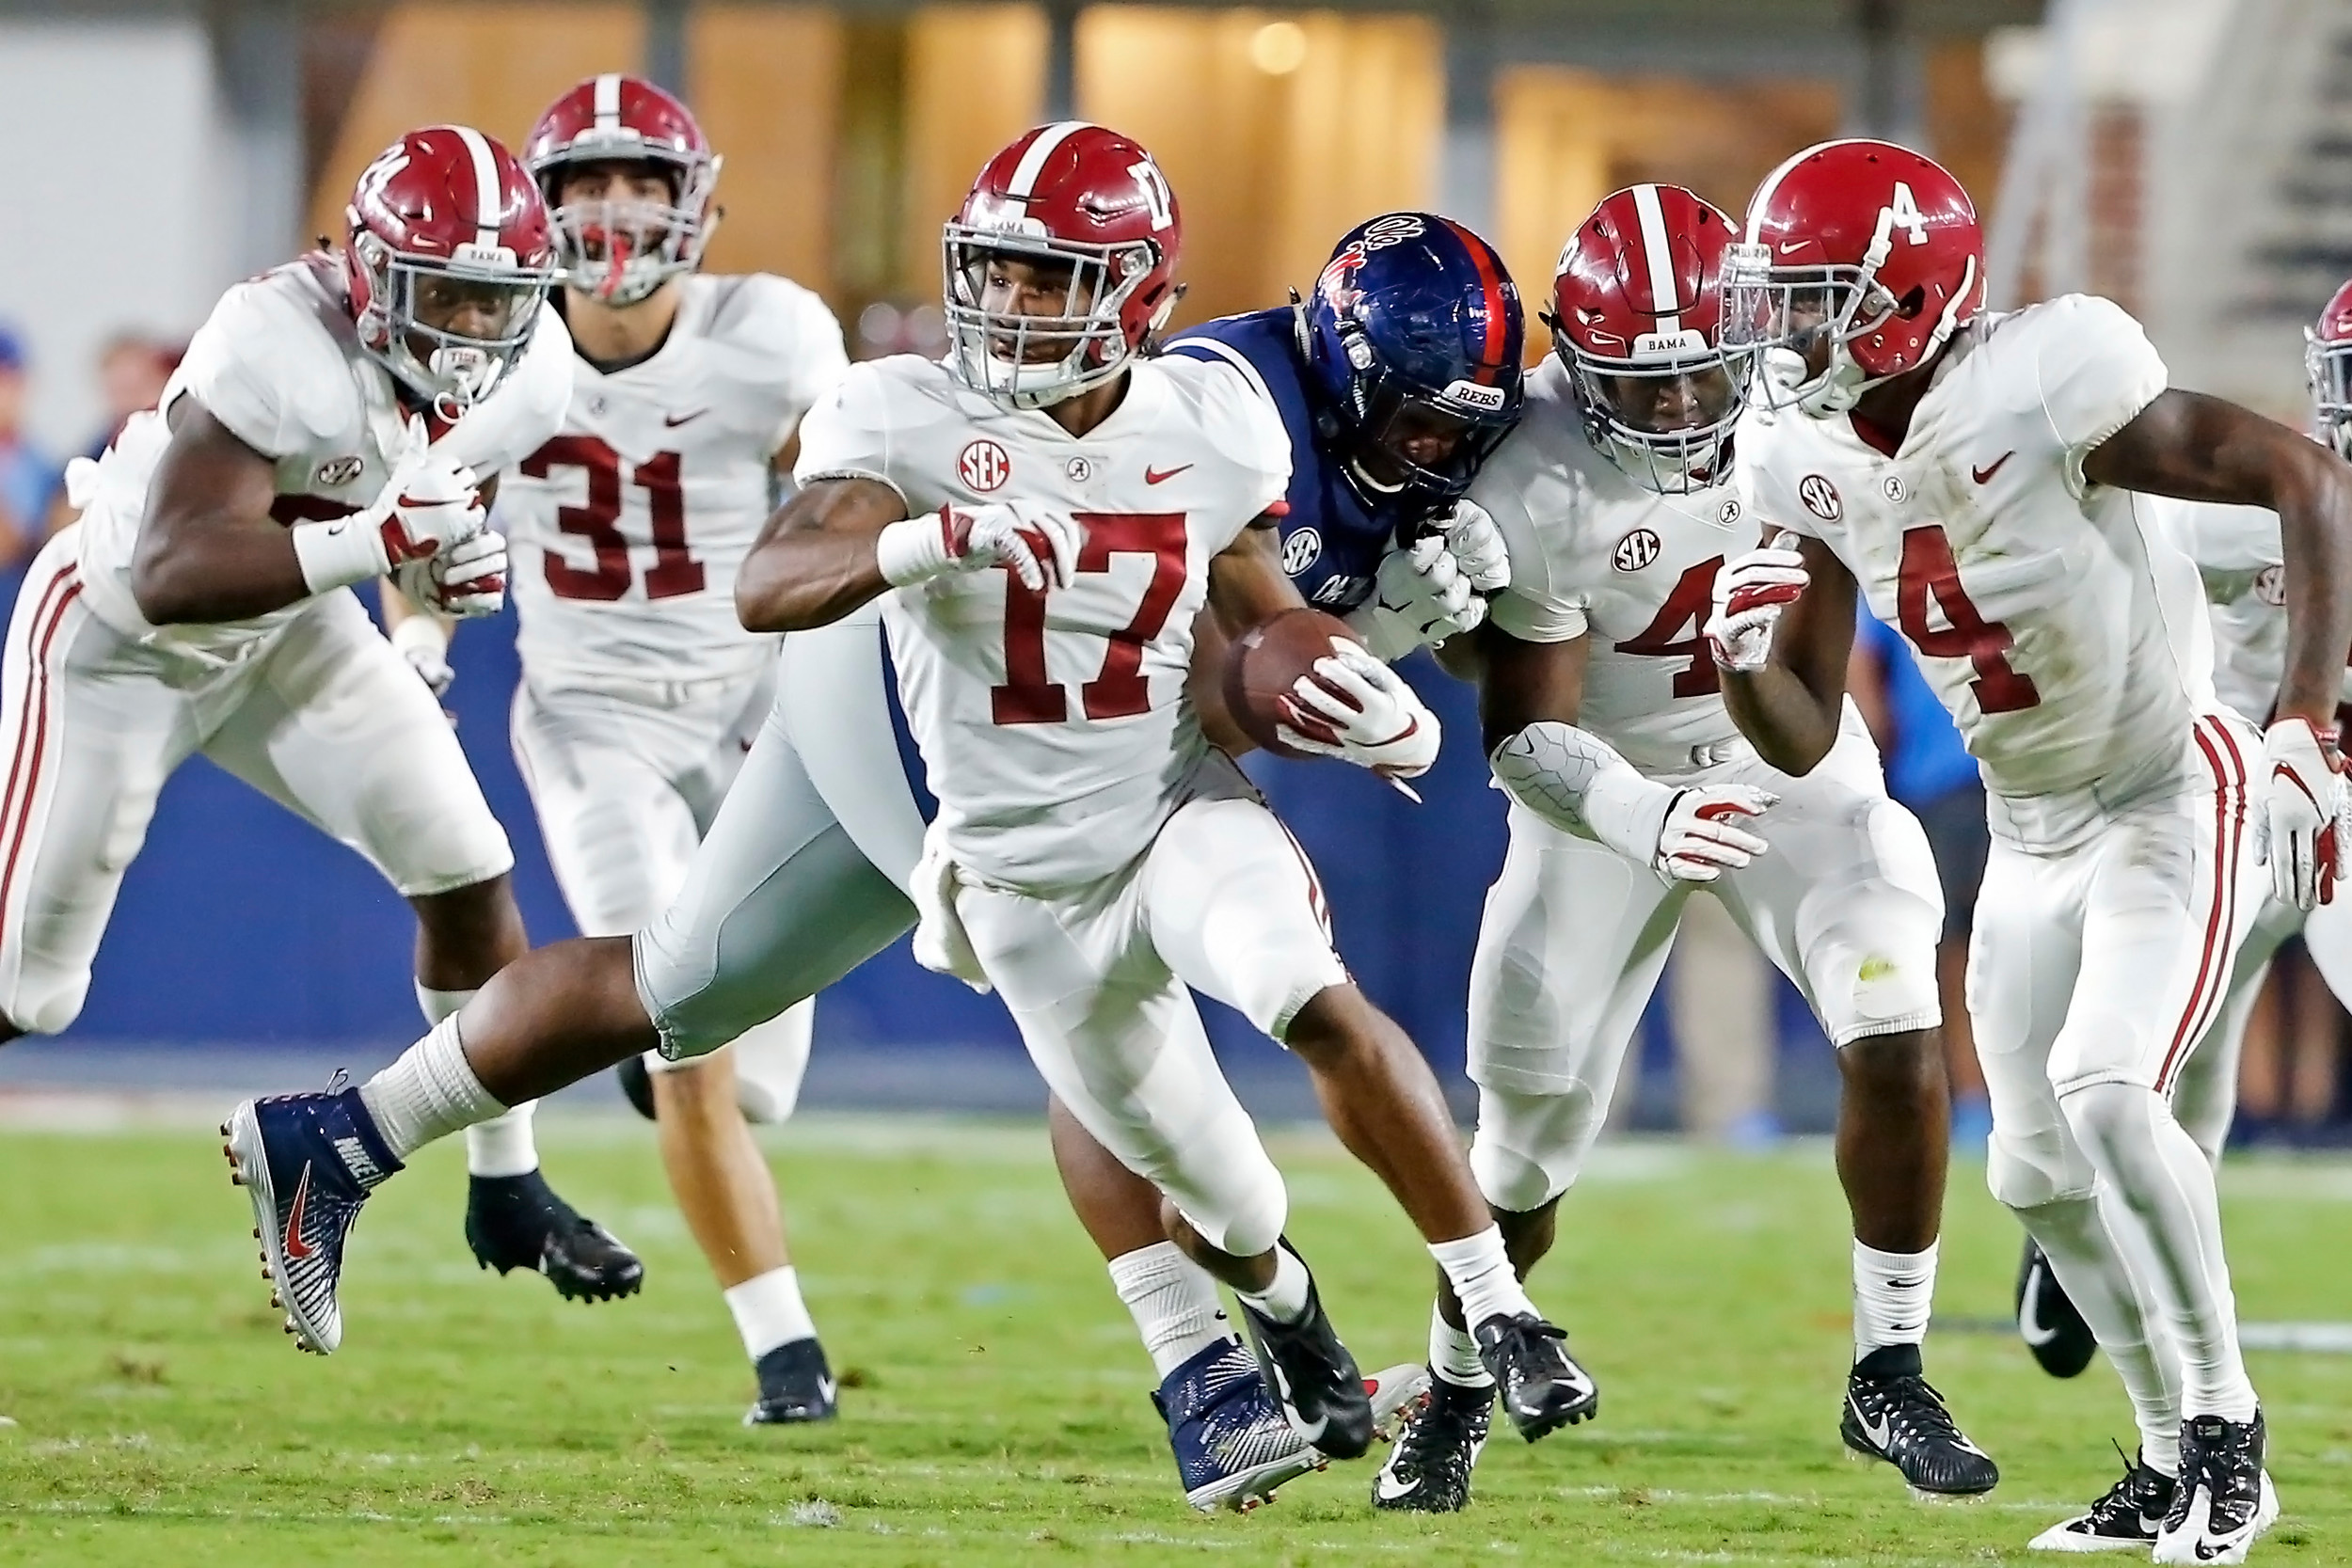 Alabama Crimson Tide wide receiver Jaylen Waddle (17) with a big put return during the game between the University of Alabama and Ole Miss at Vaught-Hemingway Stadium. Jason Clark / Daily Mountain Eagle